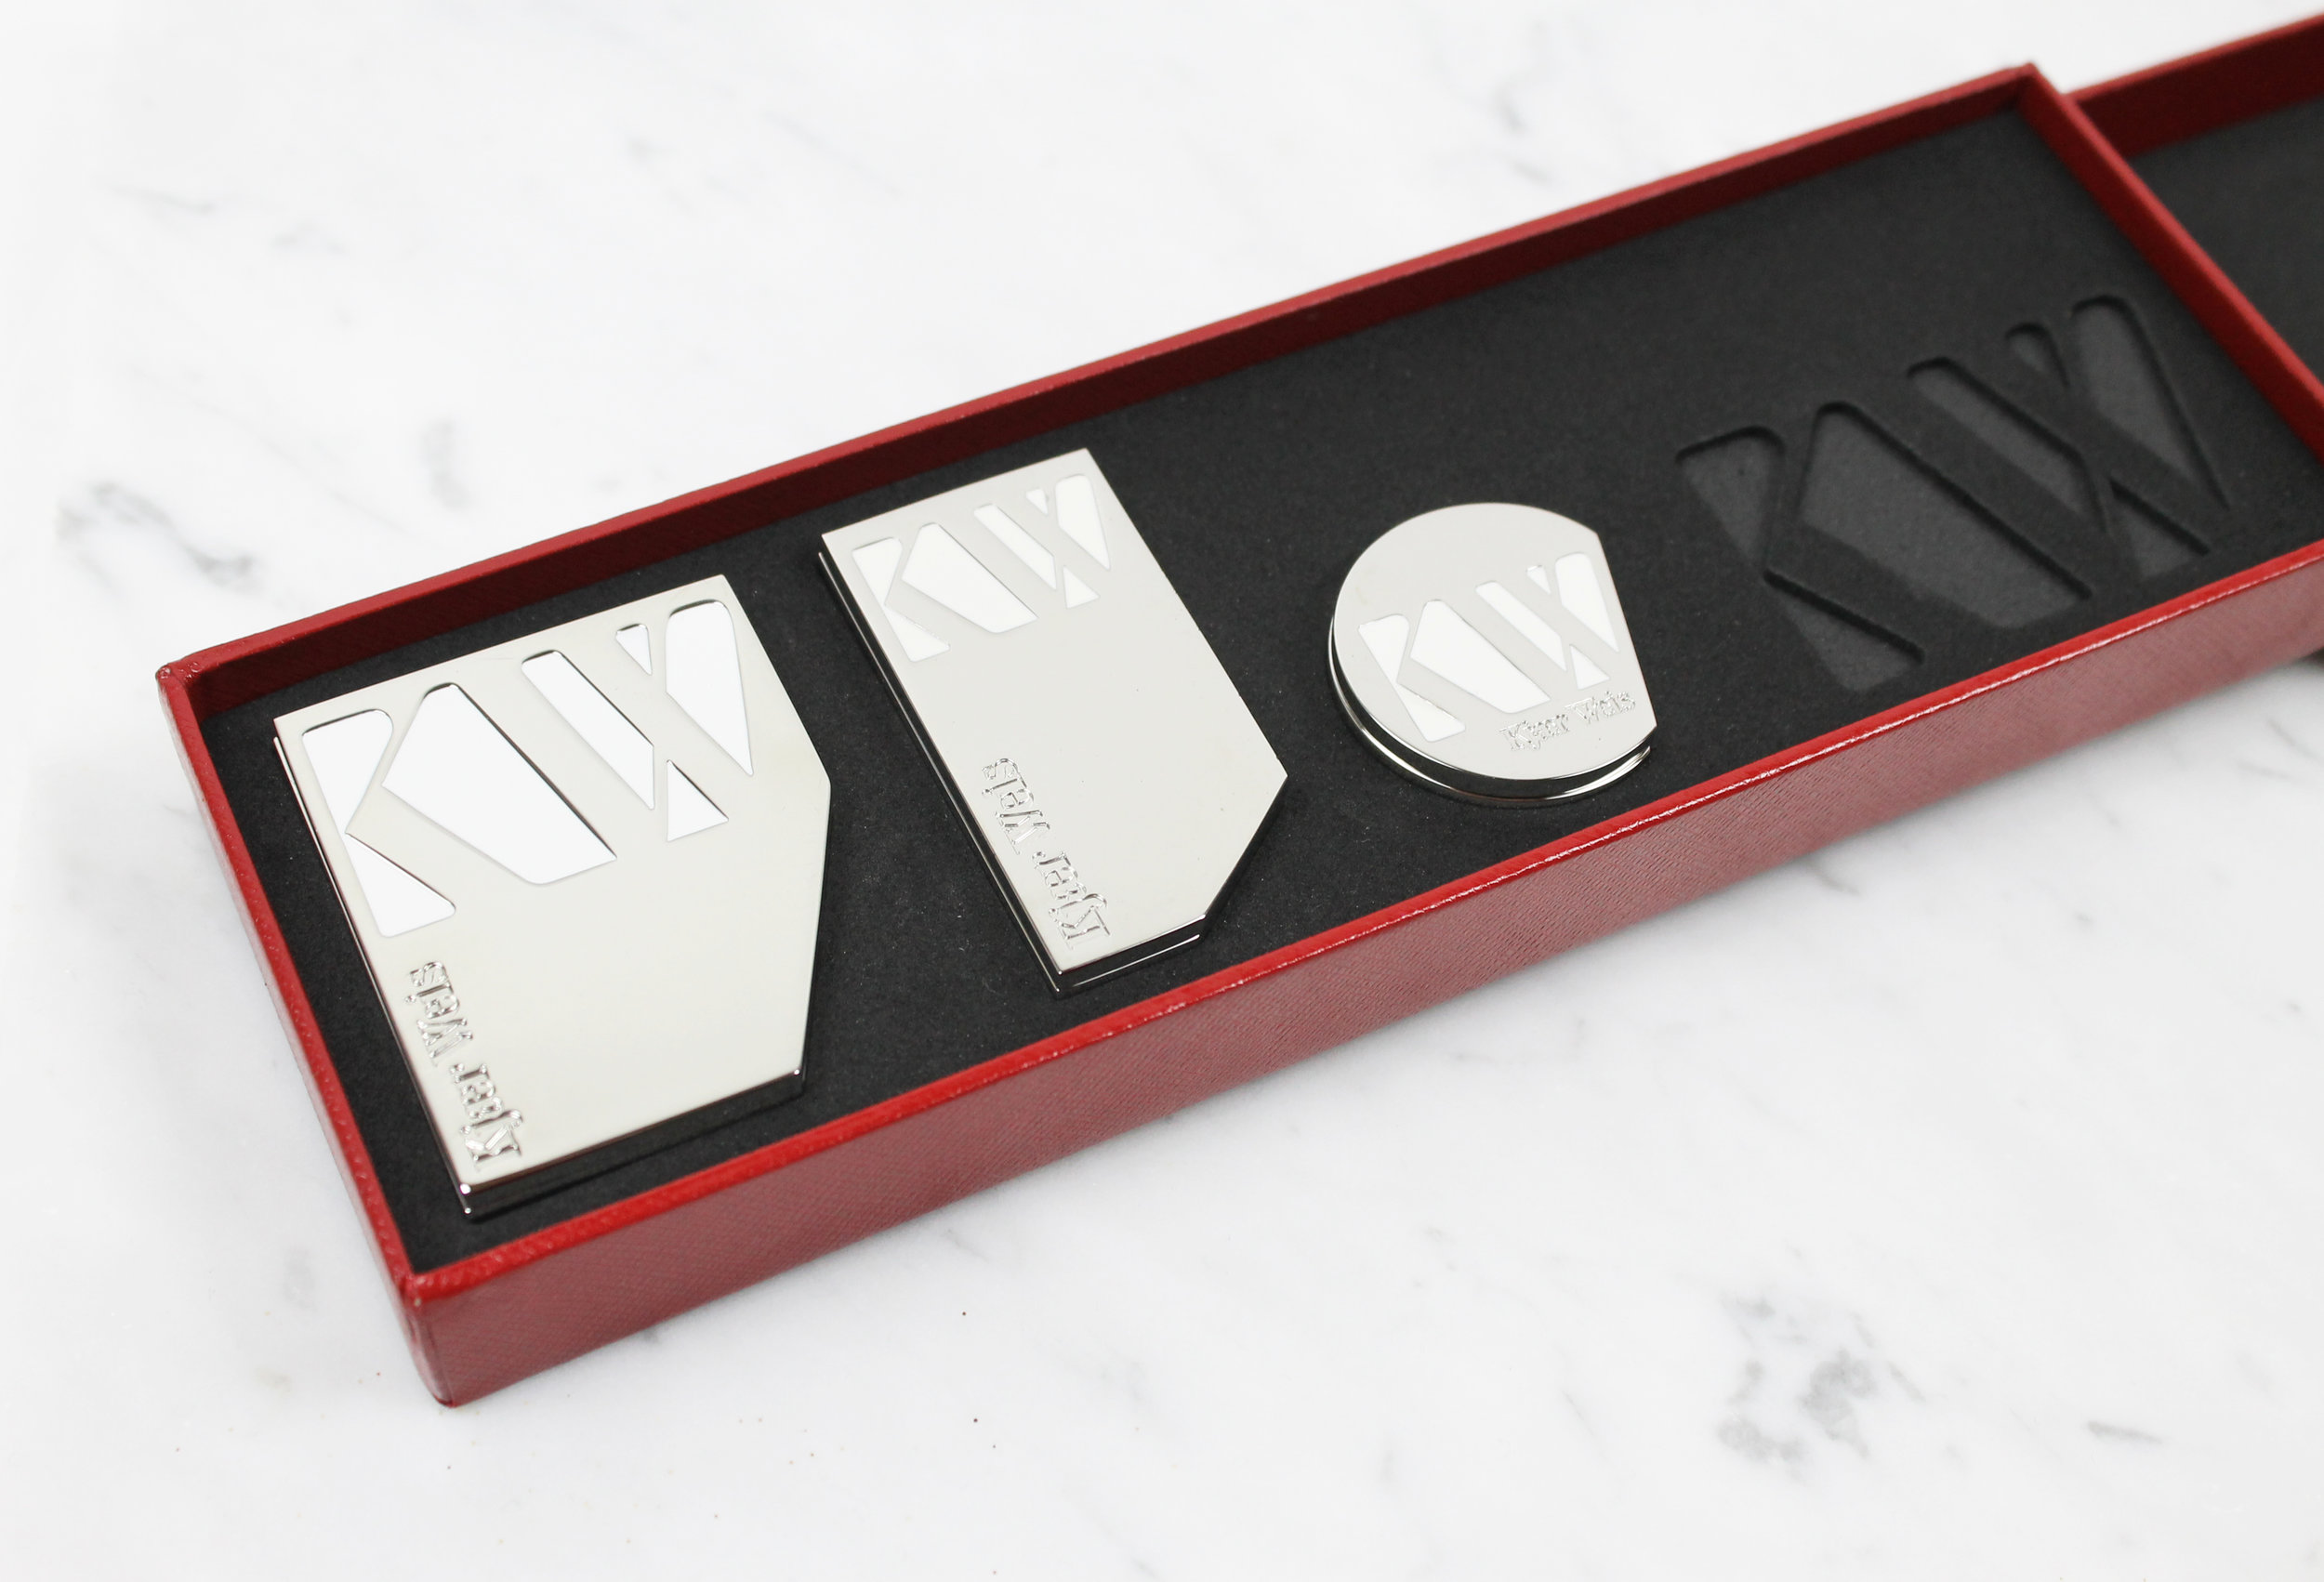 Kjaer Weis - Essential Trio 3. Get it  here .